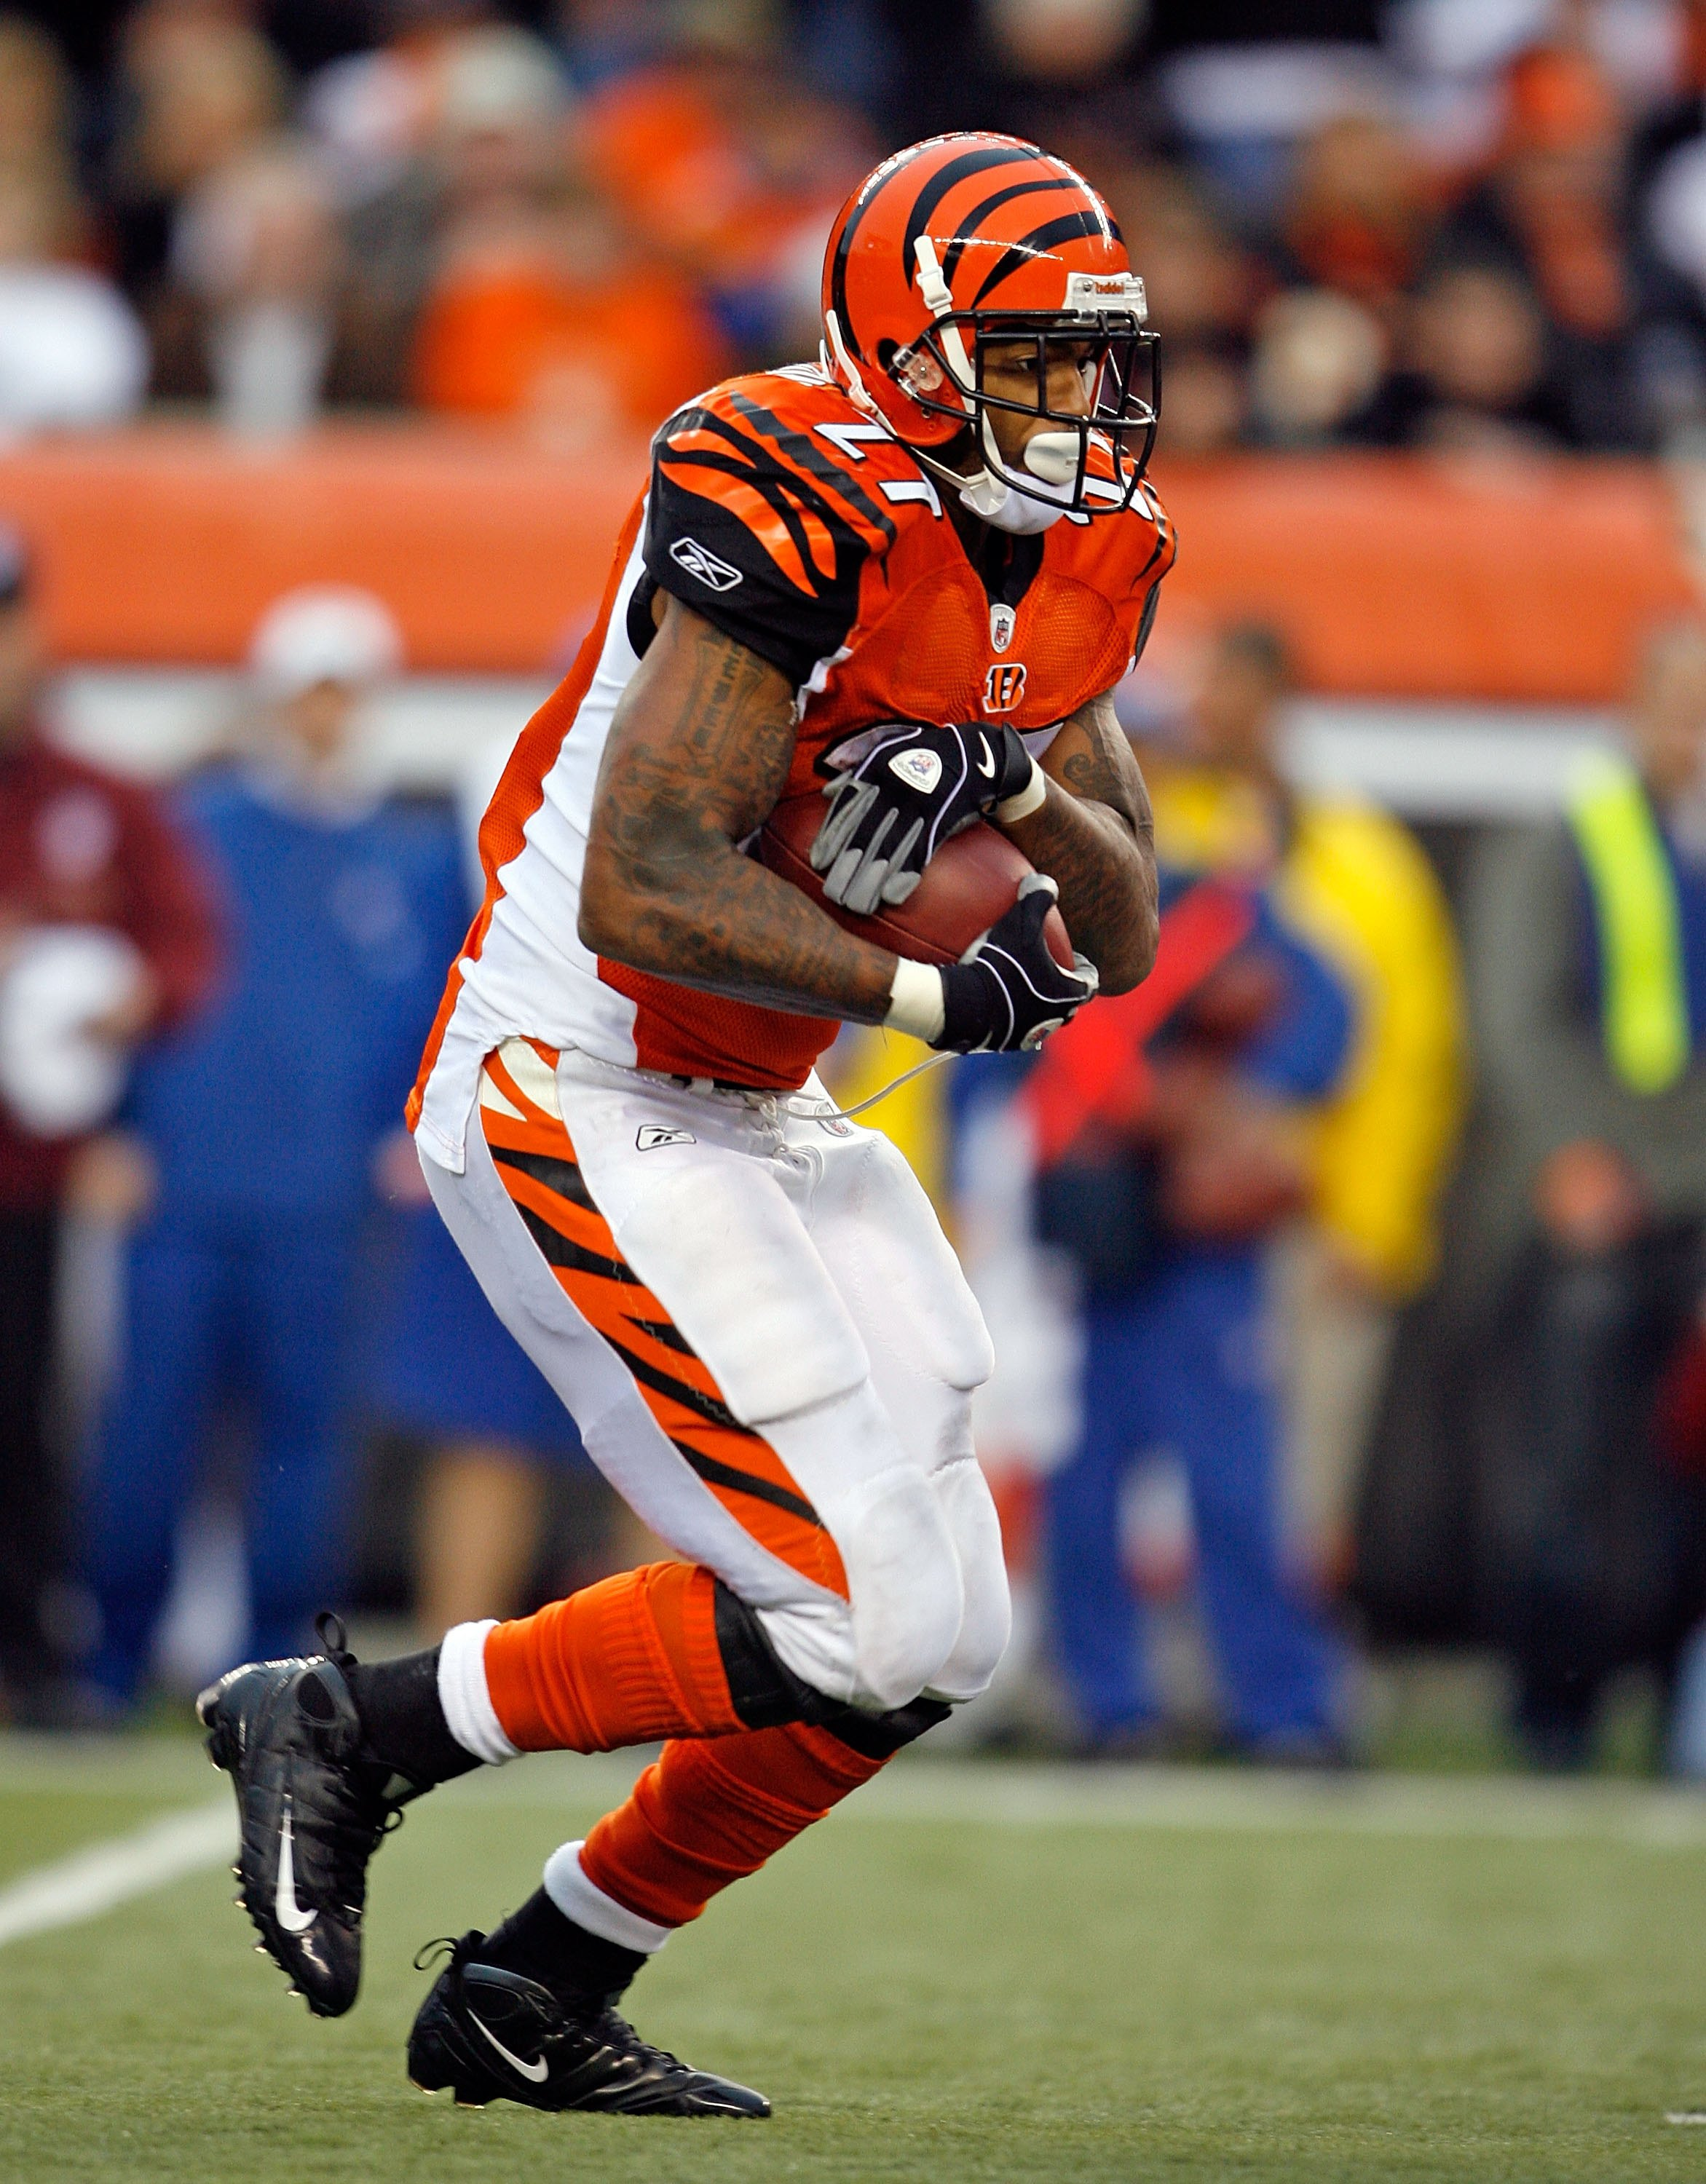 CINCINNATI - NOVEMBER 29:  Larry Johnson #27 of the Cincinnati Bengals runs with the ball  during the NFL game against the Cleveland Browns at Paul Brown Stadium on November 29, 2009 in Cincinnati, Ohio.  (Photo by Andy Lyons/Getty Images)